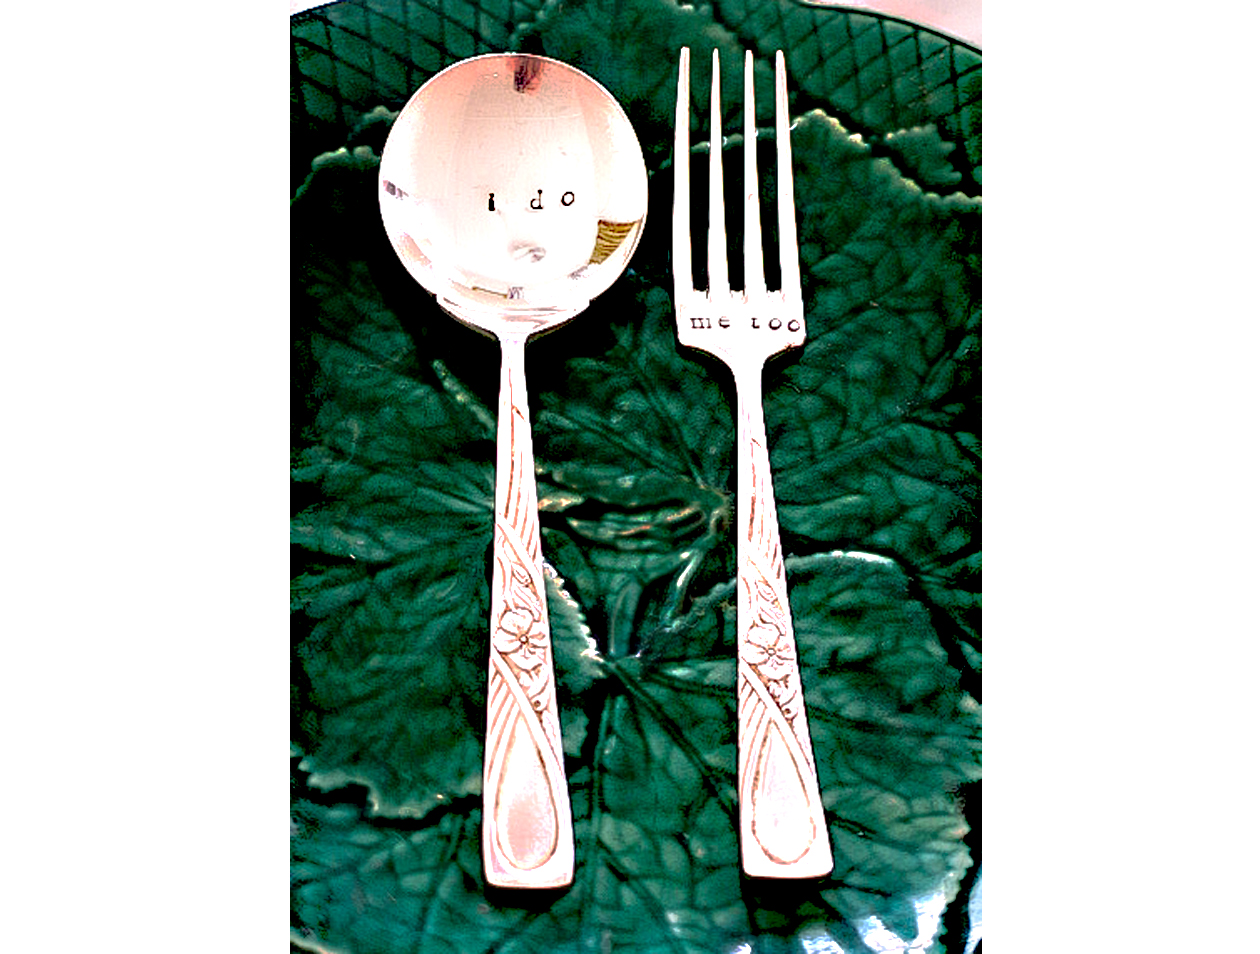 Vintage Wedding Gifts For Bride And Groom : Wedding vintage cutlery for bride and groom unique engagement gift ...